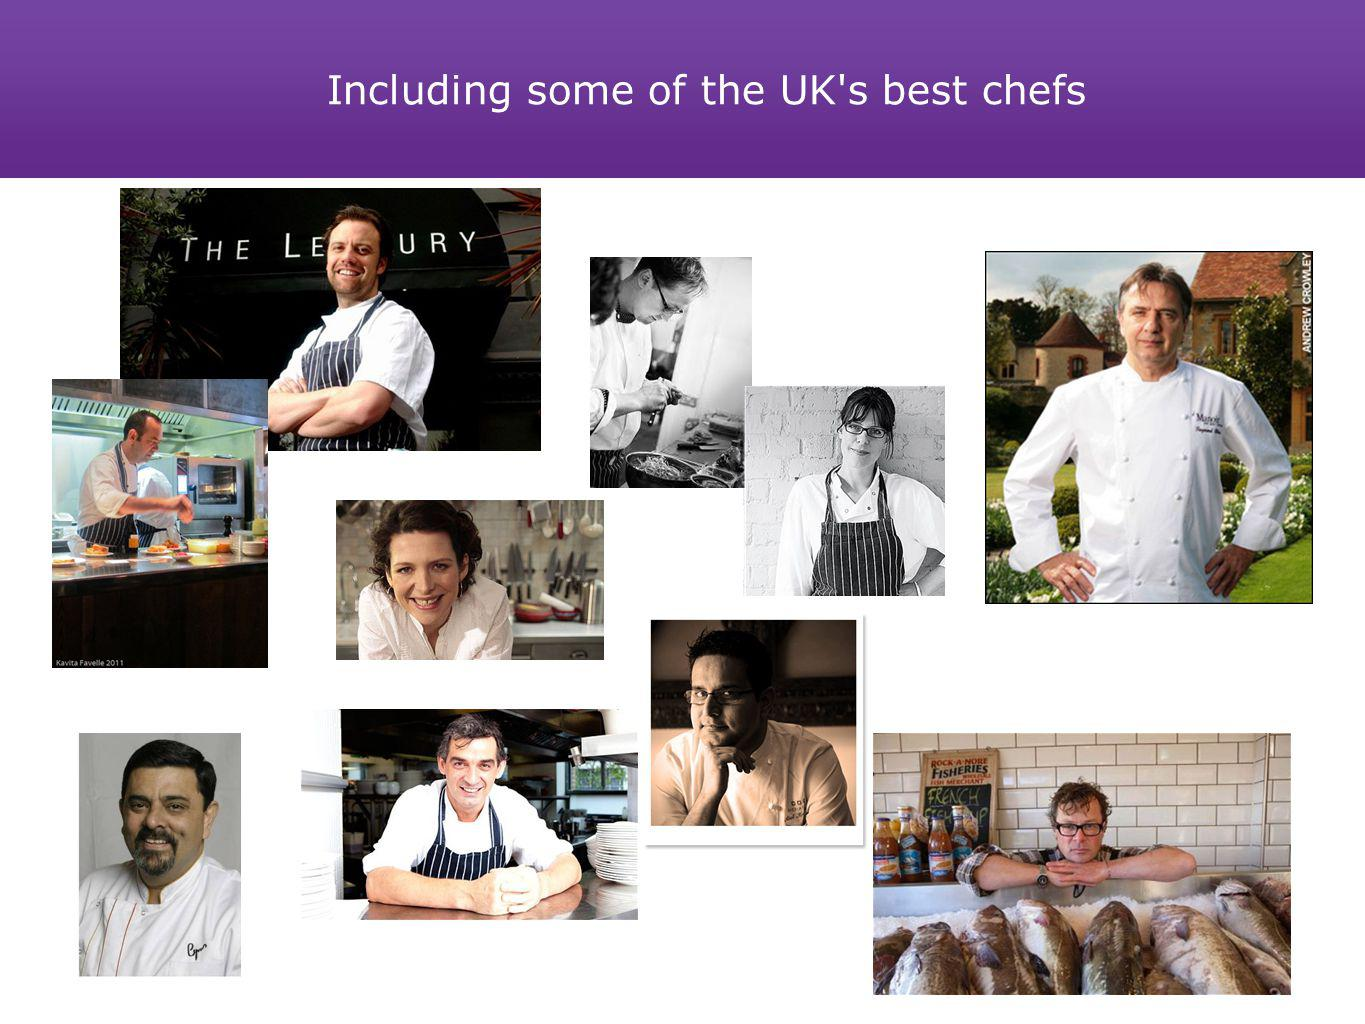 Including some of the UK's best chefs